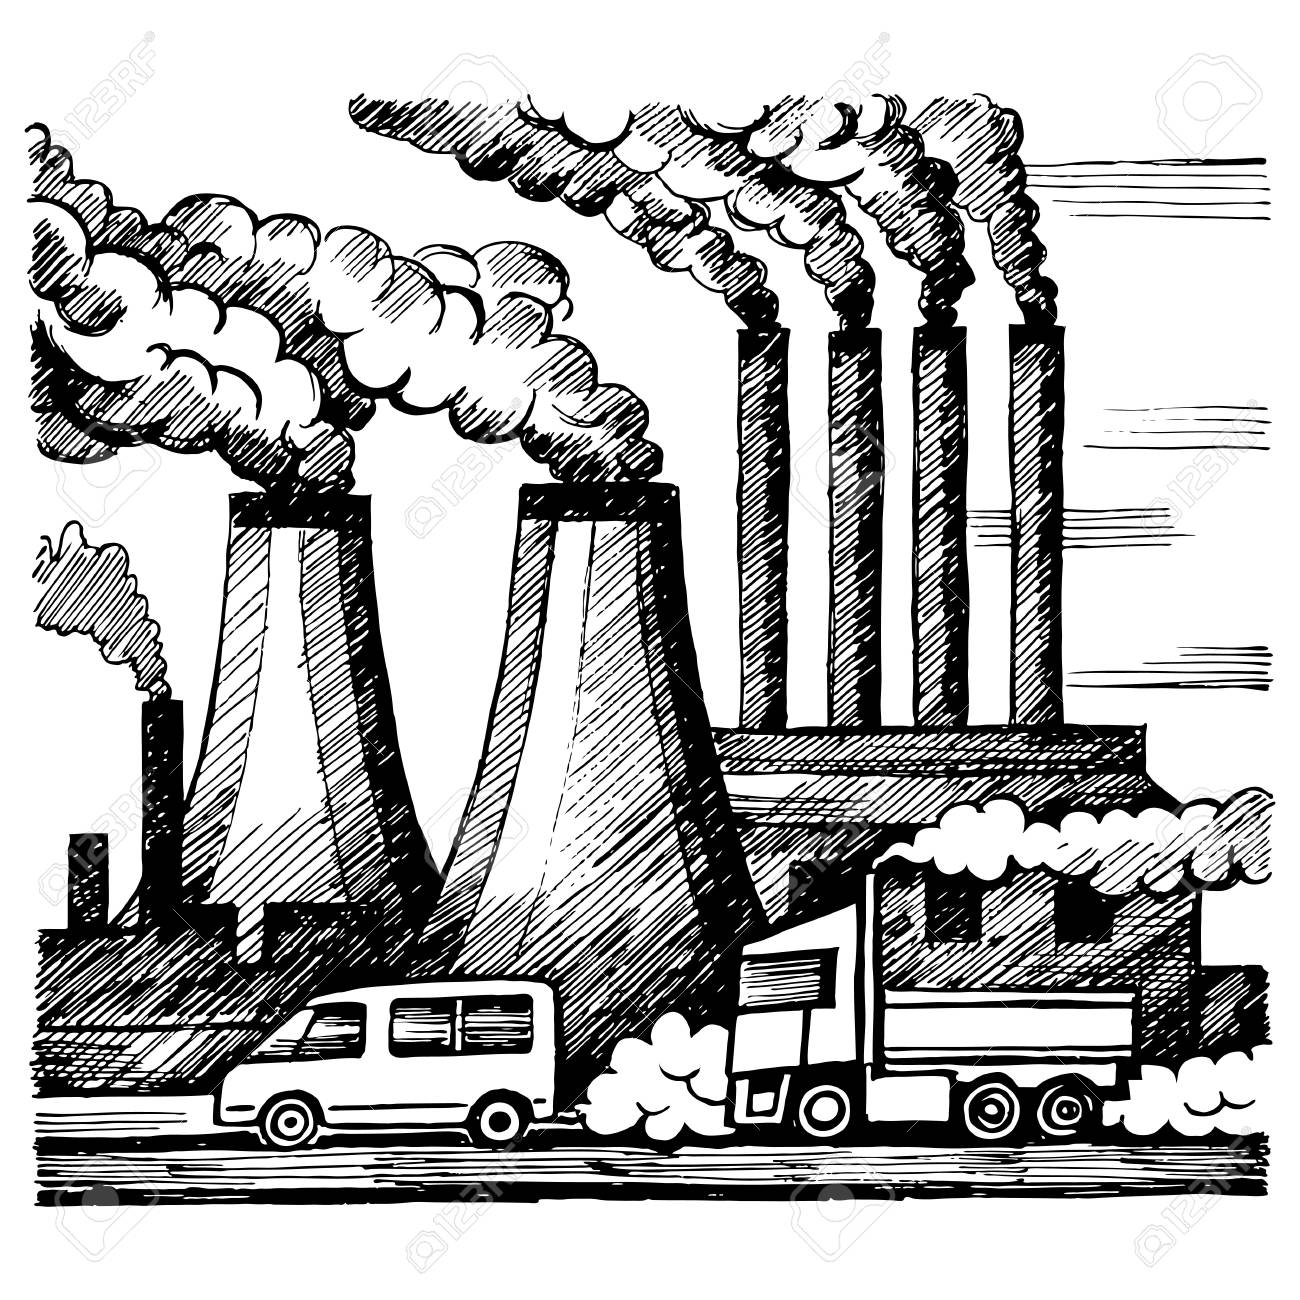 Air pollution drawing at getdrawings com free for personal